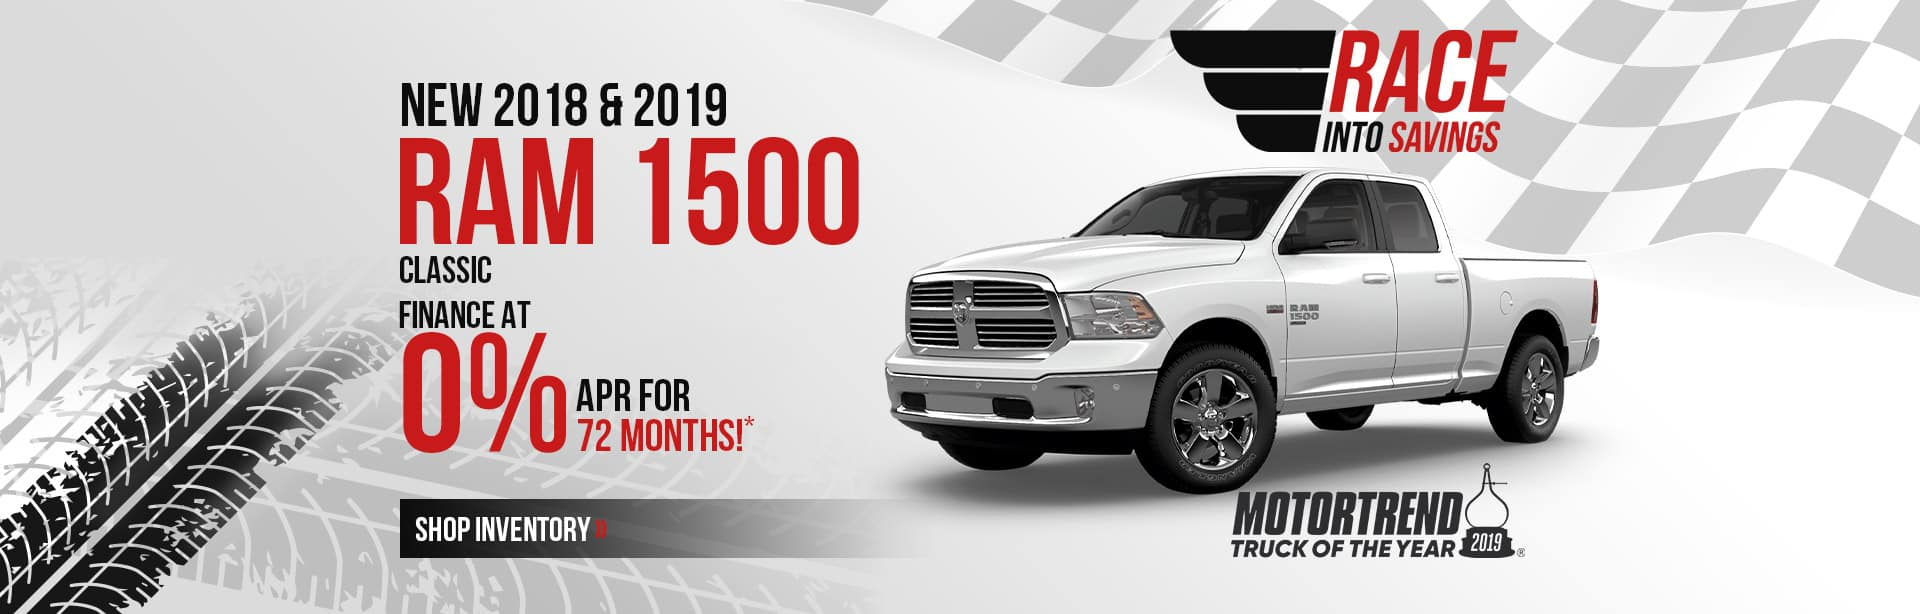 New RAM 1500 Classic at 0% APR for 72 months near Terre Haute.